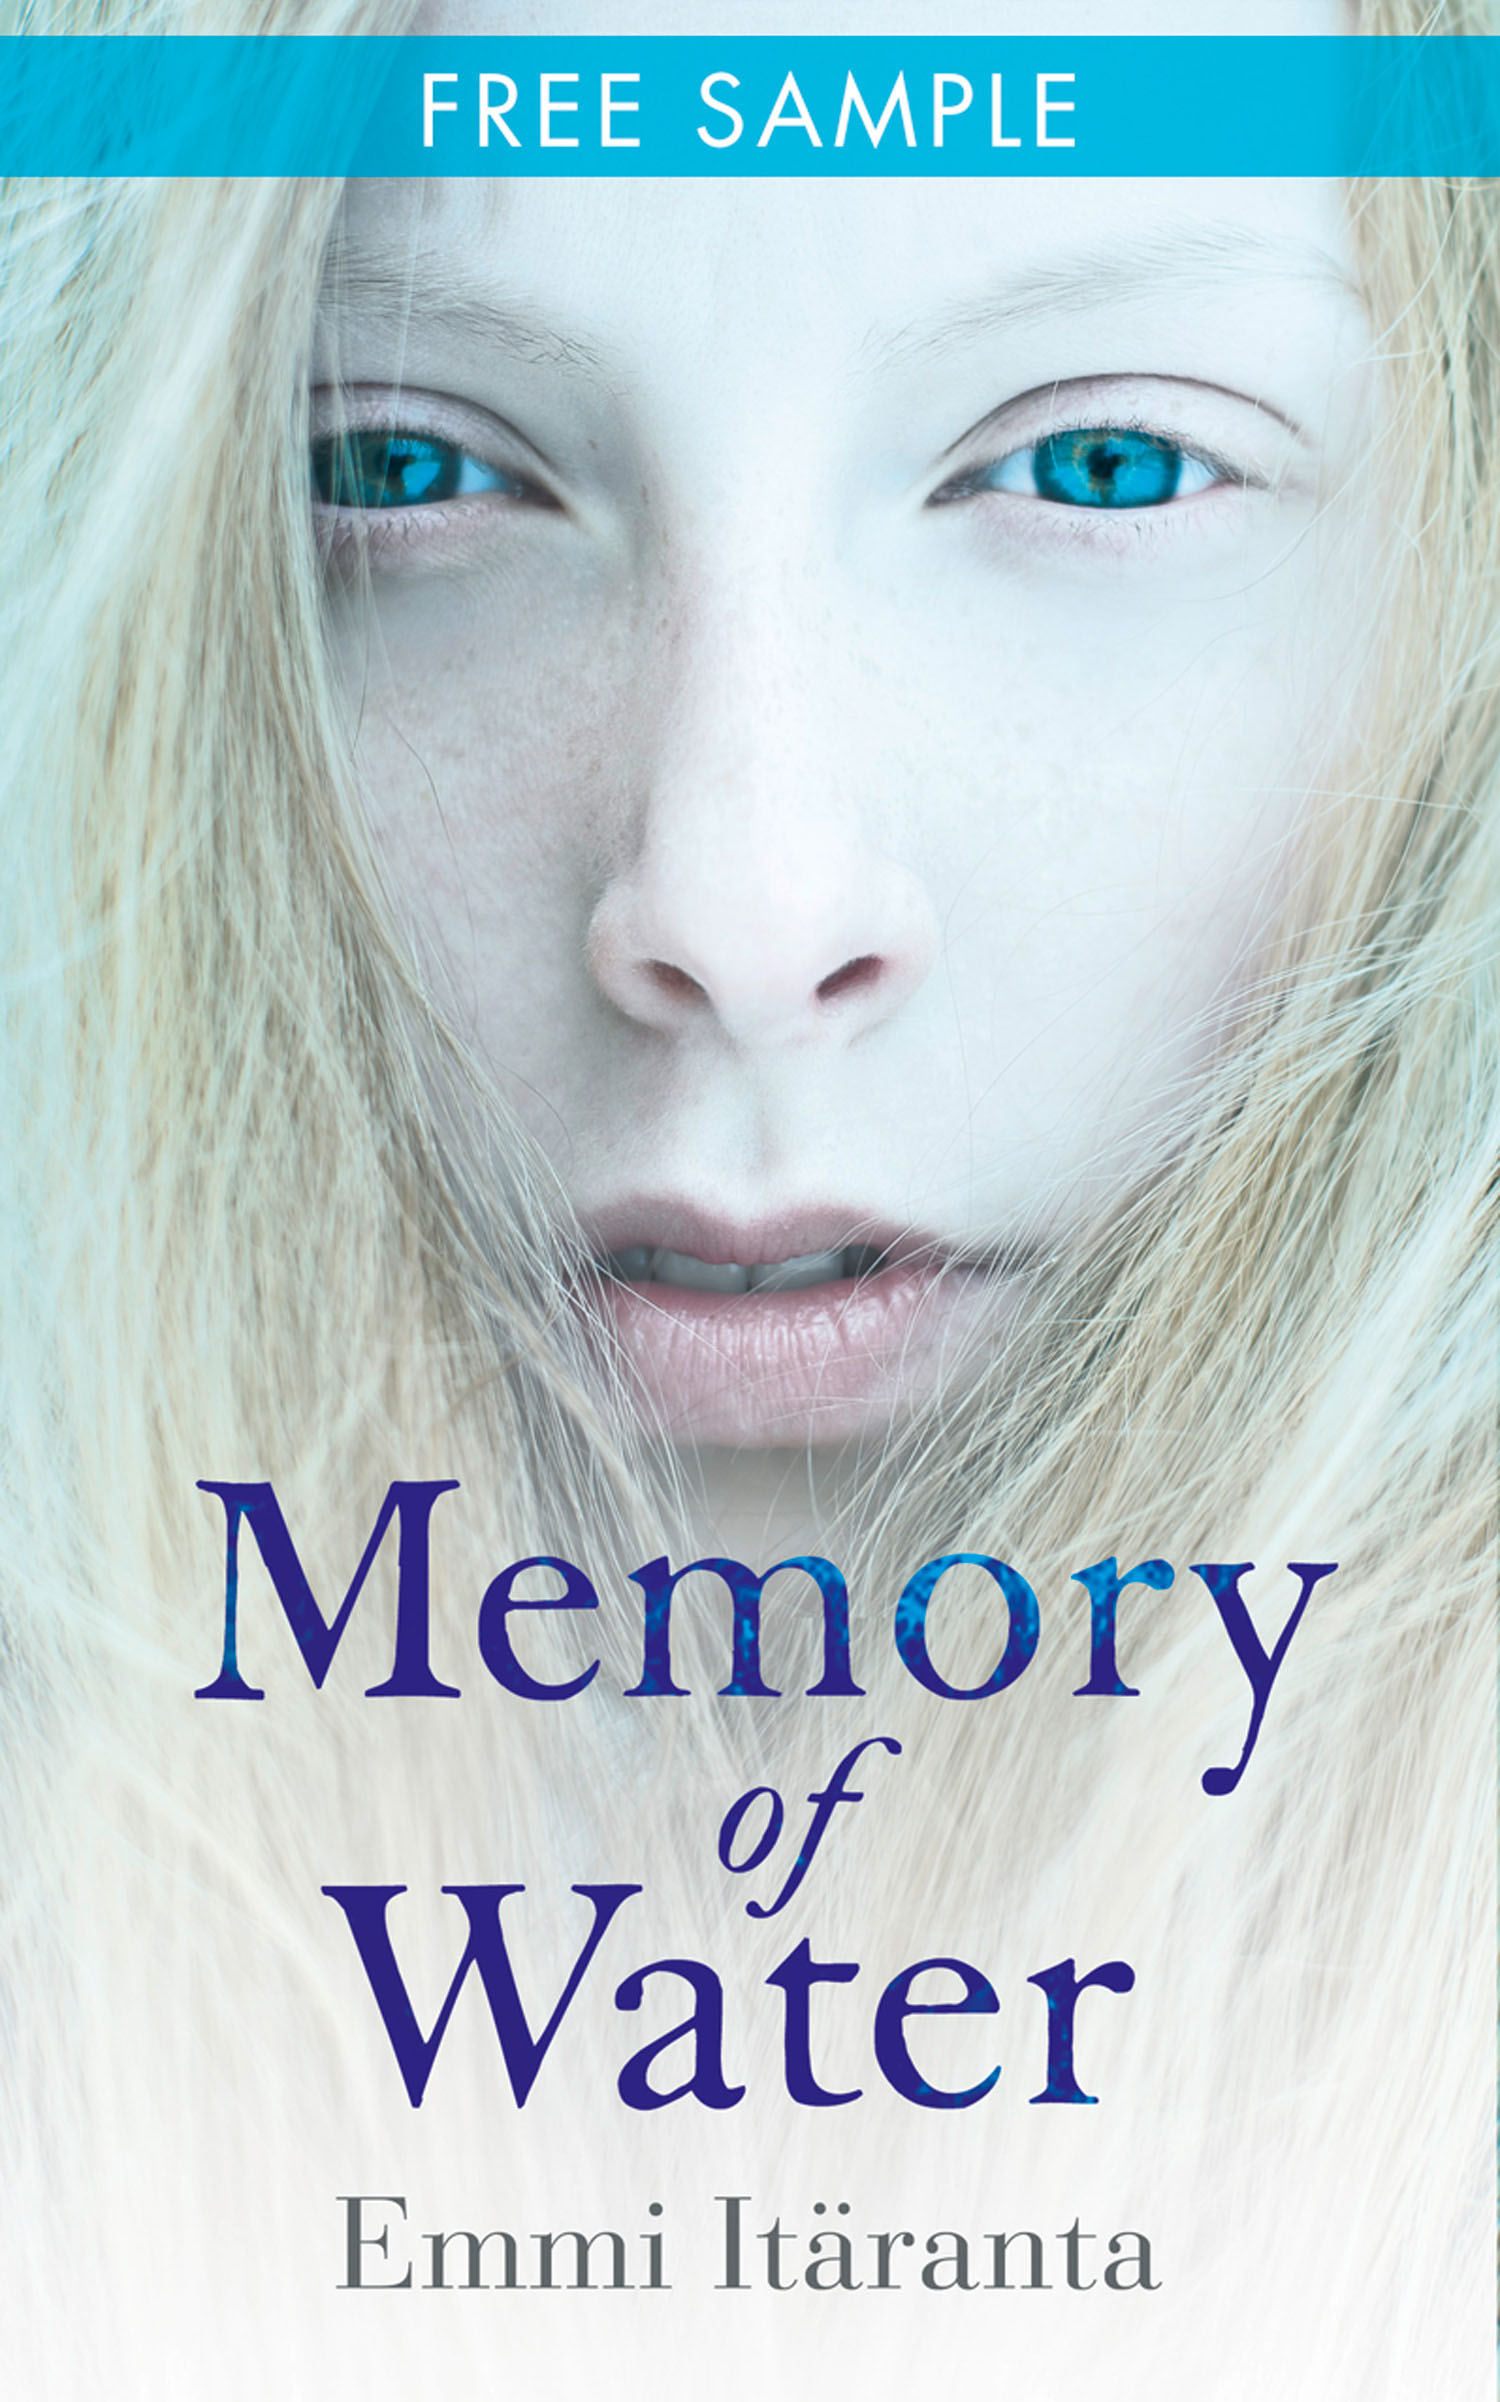 Memory of Water: free sampler